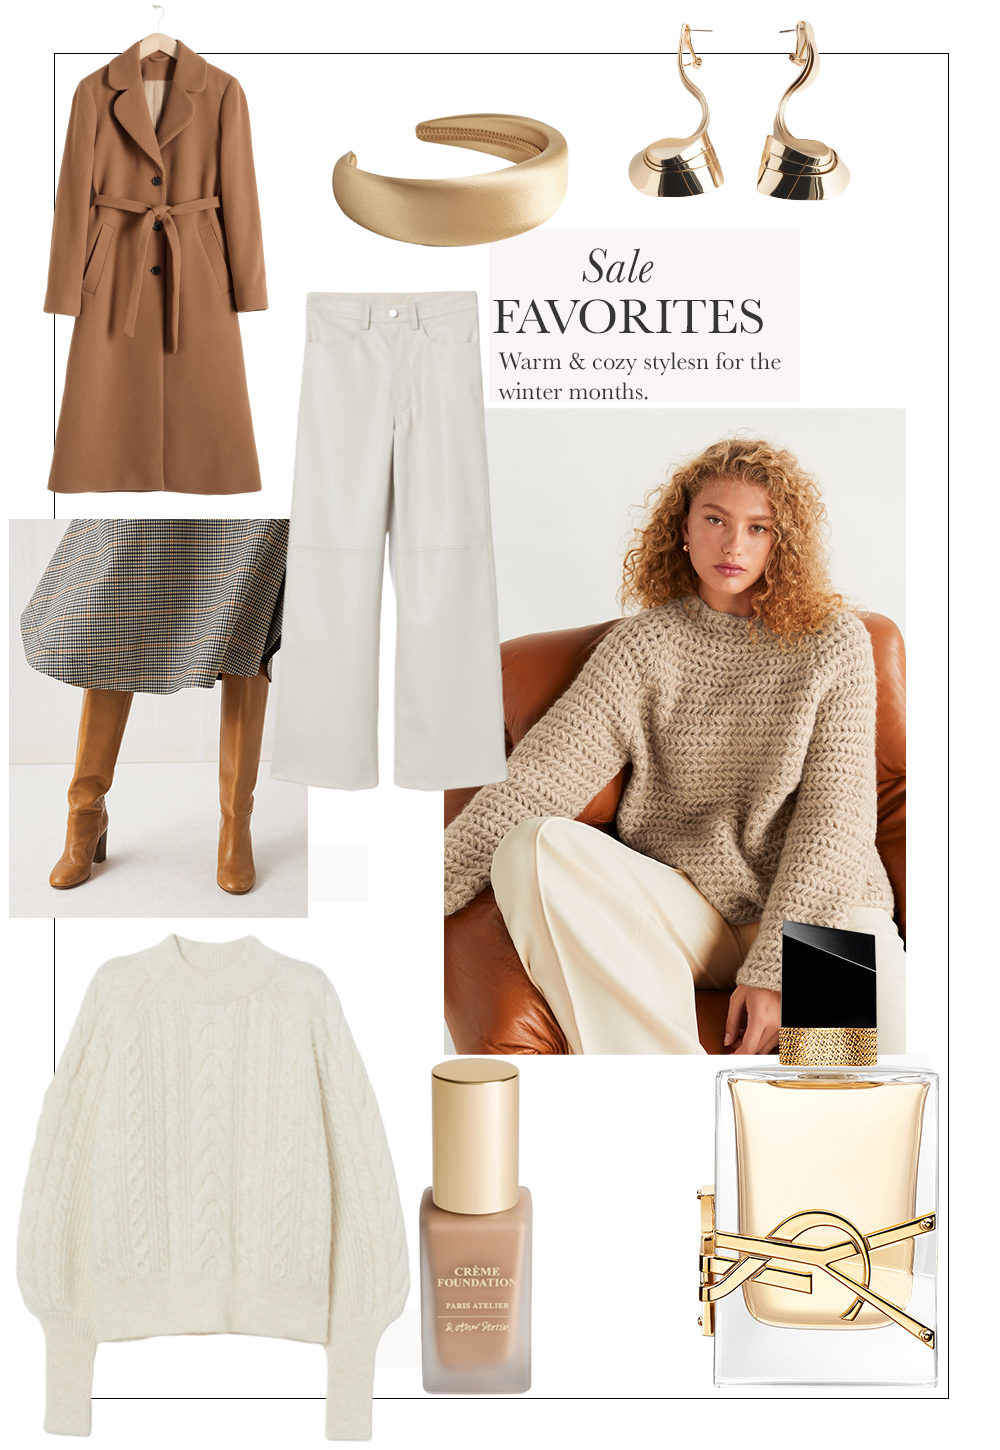 Sale Favoriten December: Neutrals sale-favorites-december-winter-styles-fashionzauber